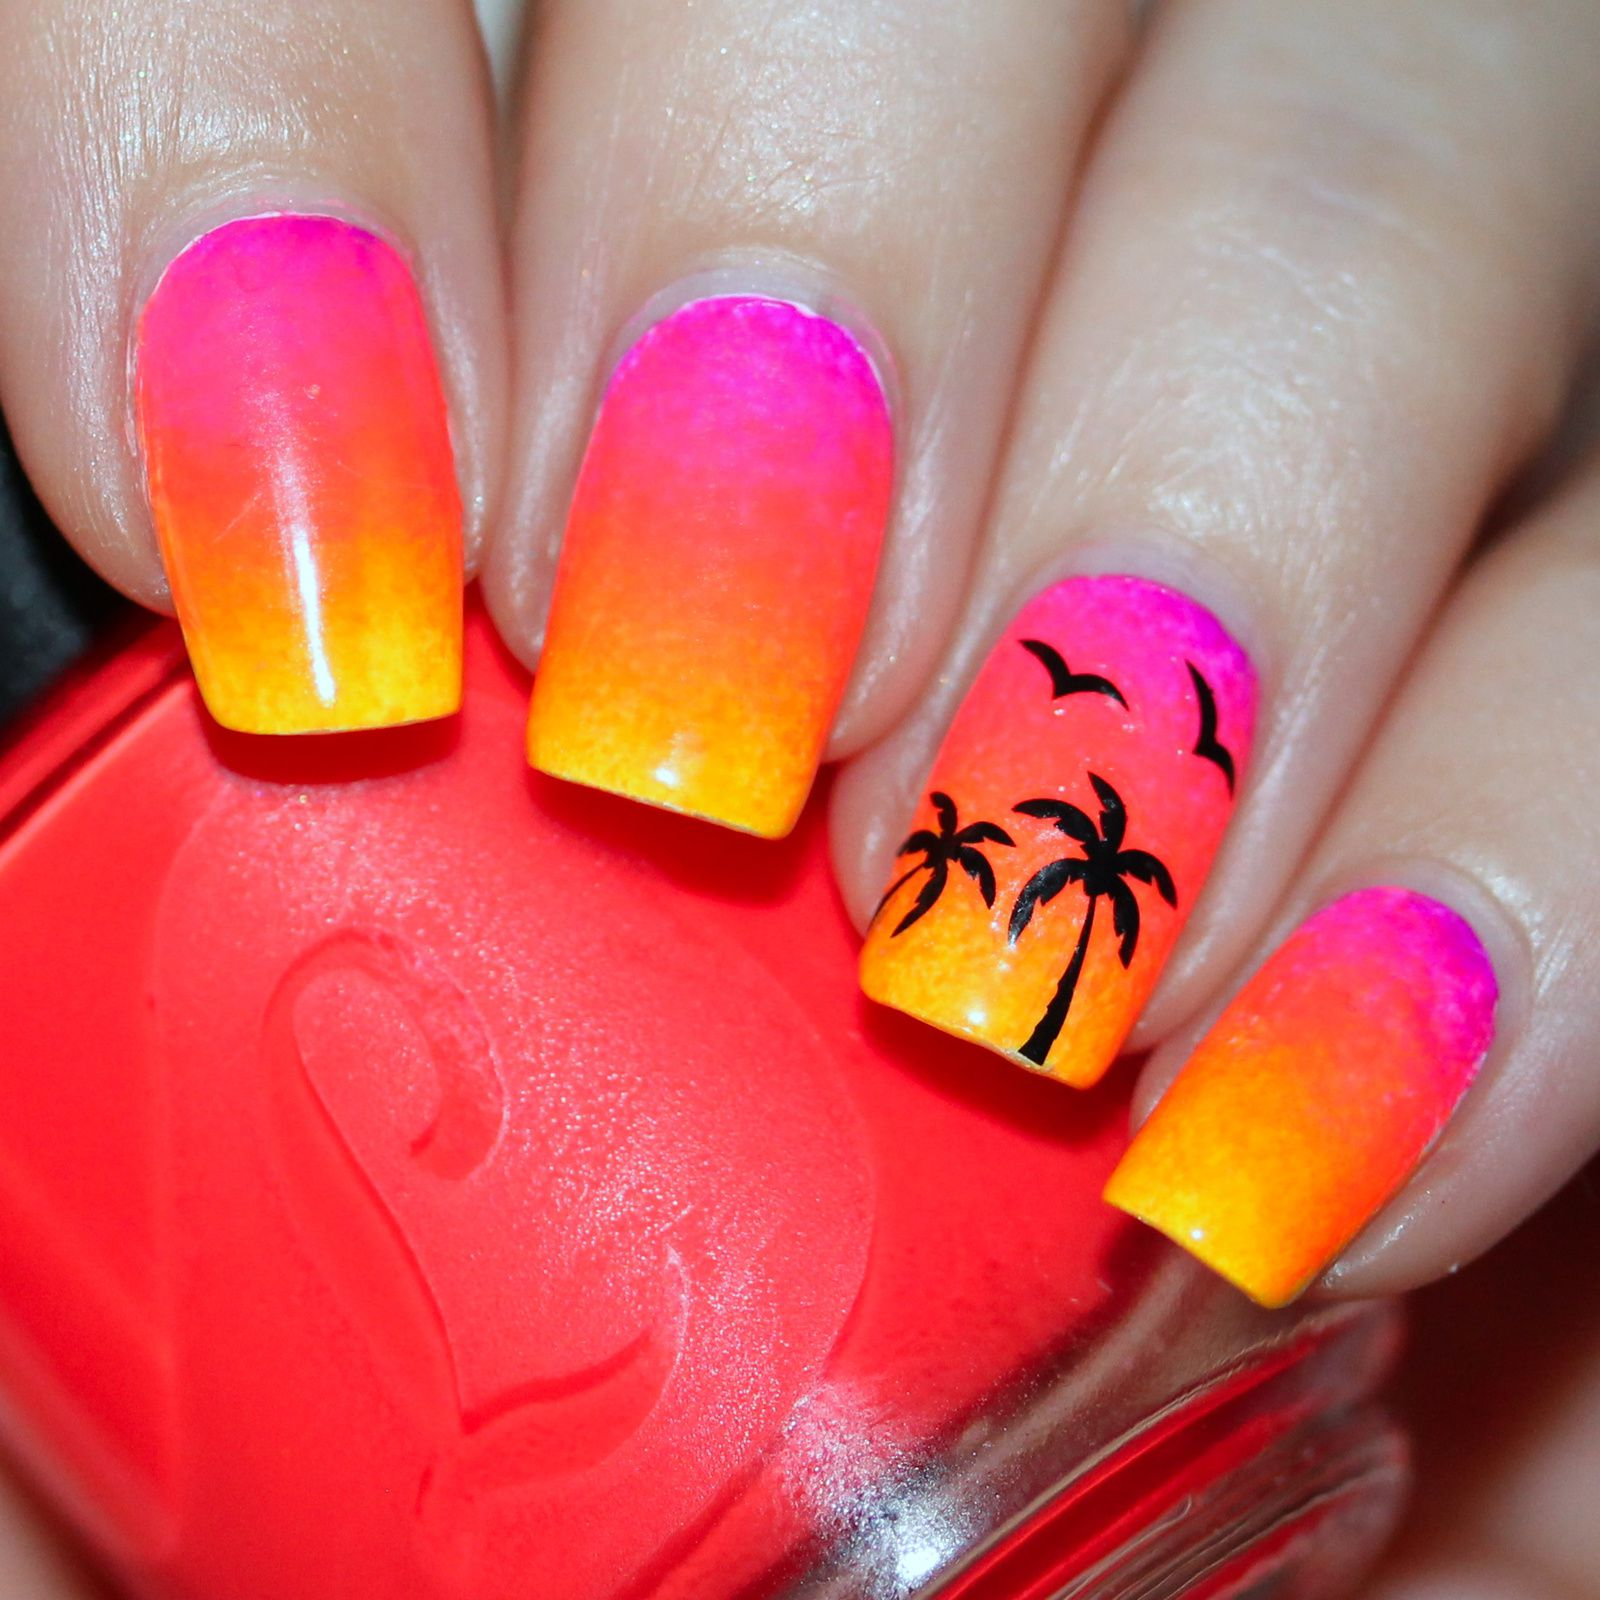 Duri Rejuvacote / Finger Paints Base Coat for Neons / Lou It Yourself Cat Got Your Tongue?, Selling Like Hotcakes, Beg The Question, The Rest is History & Ley Bygones Be Bygones / Kiss Nails Polish Pop Abbey Road 101 / HK Girl Top Coat